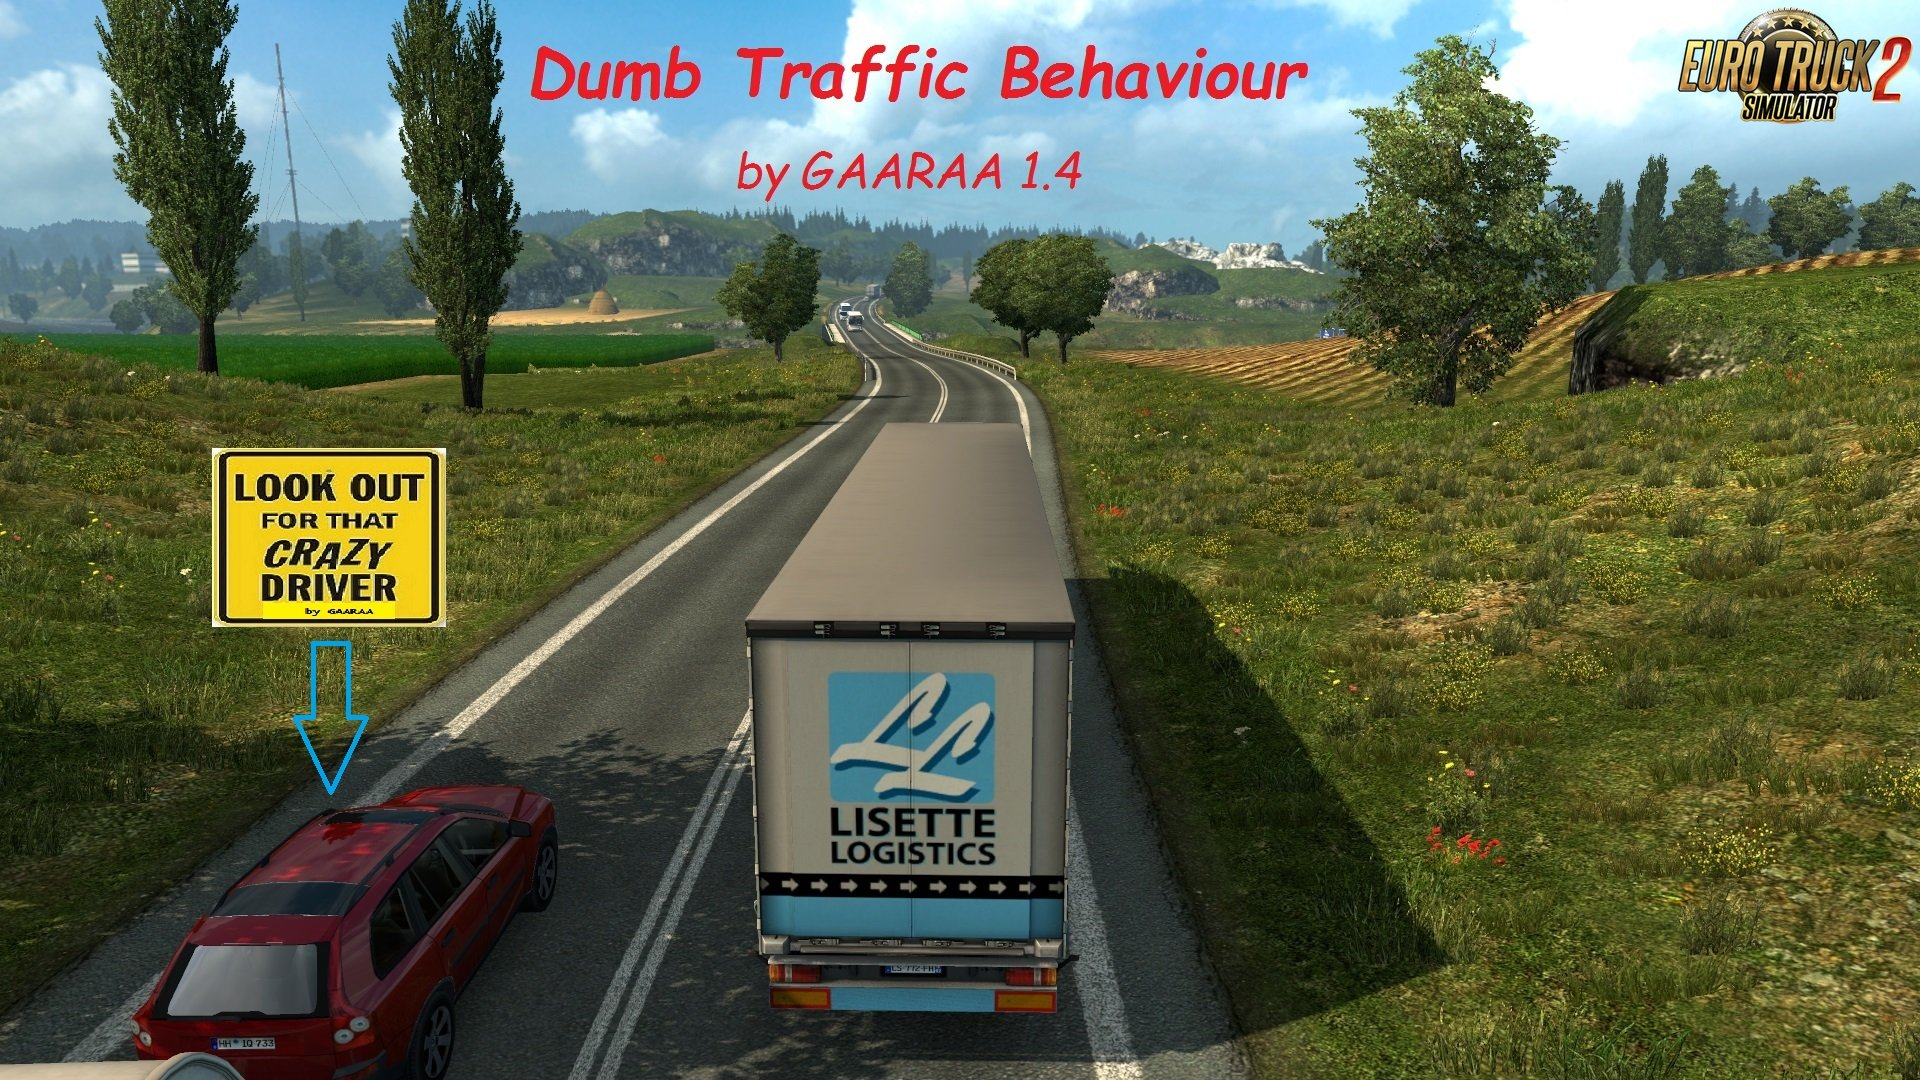 Dumb Traffic Behaviour by GAARAA 1.4